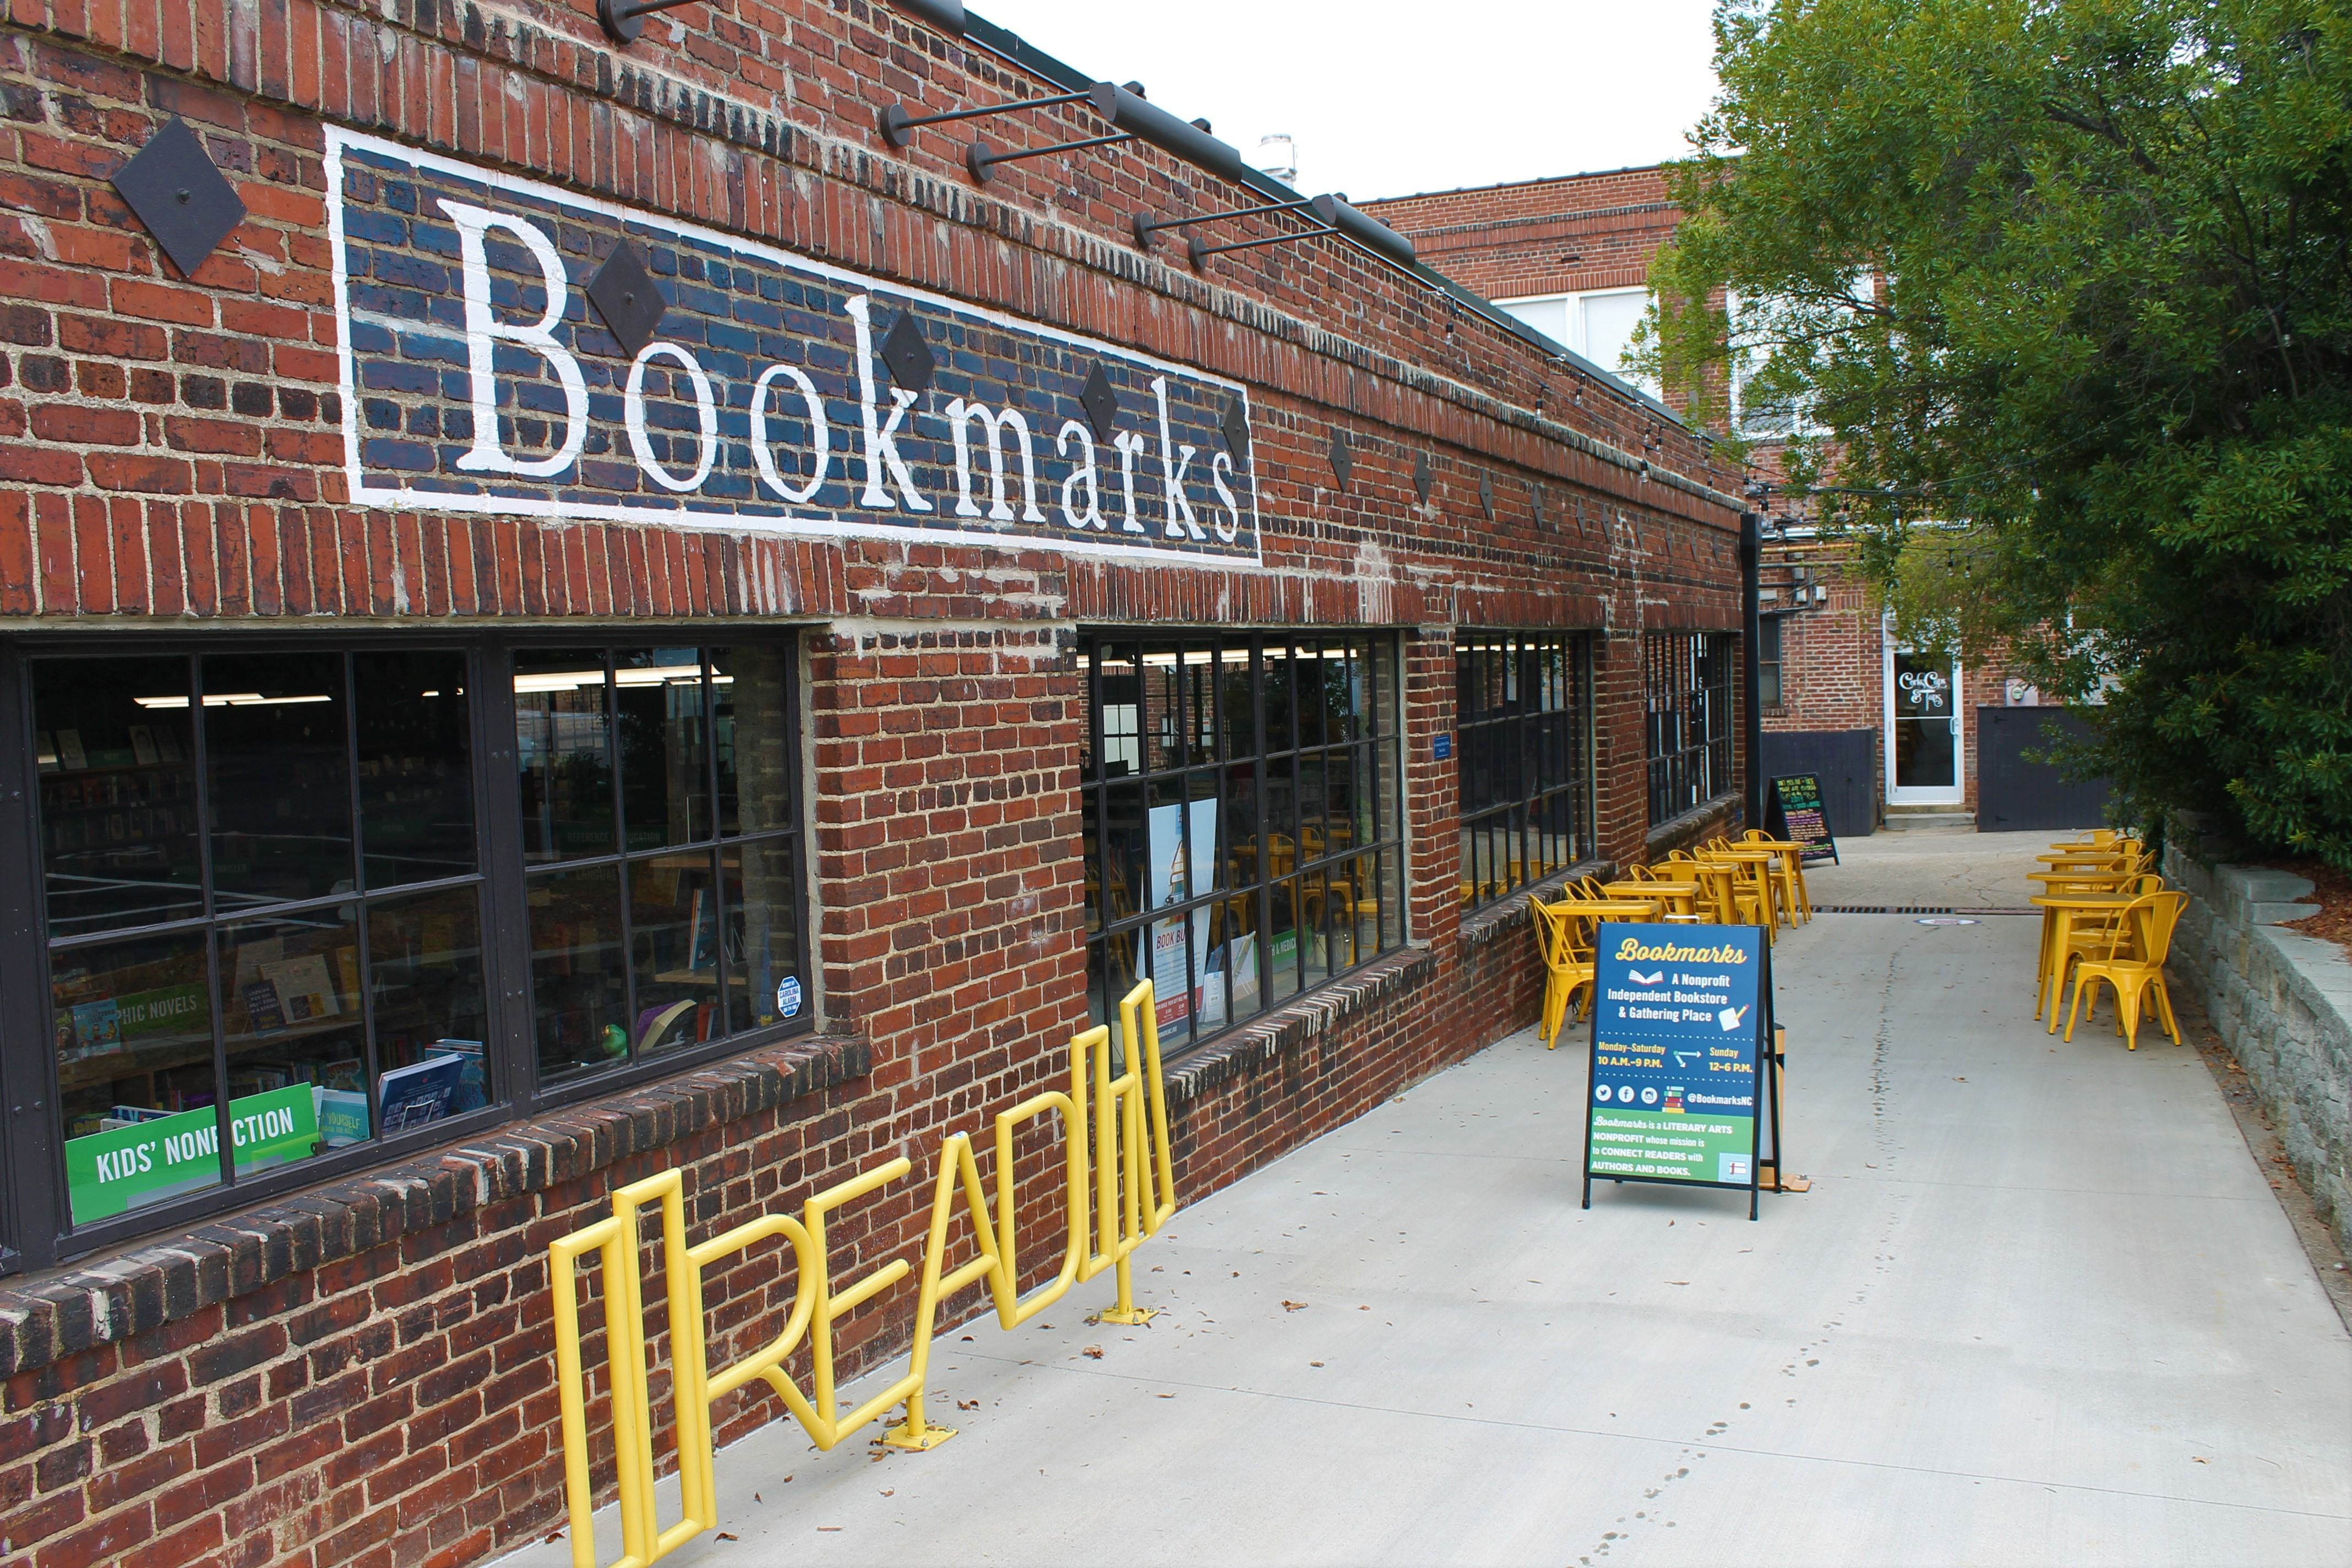 exterior of bookmarks outdoor seating